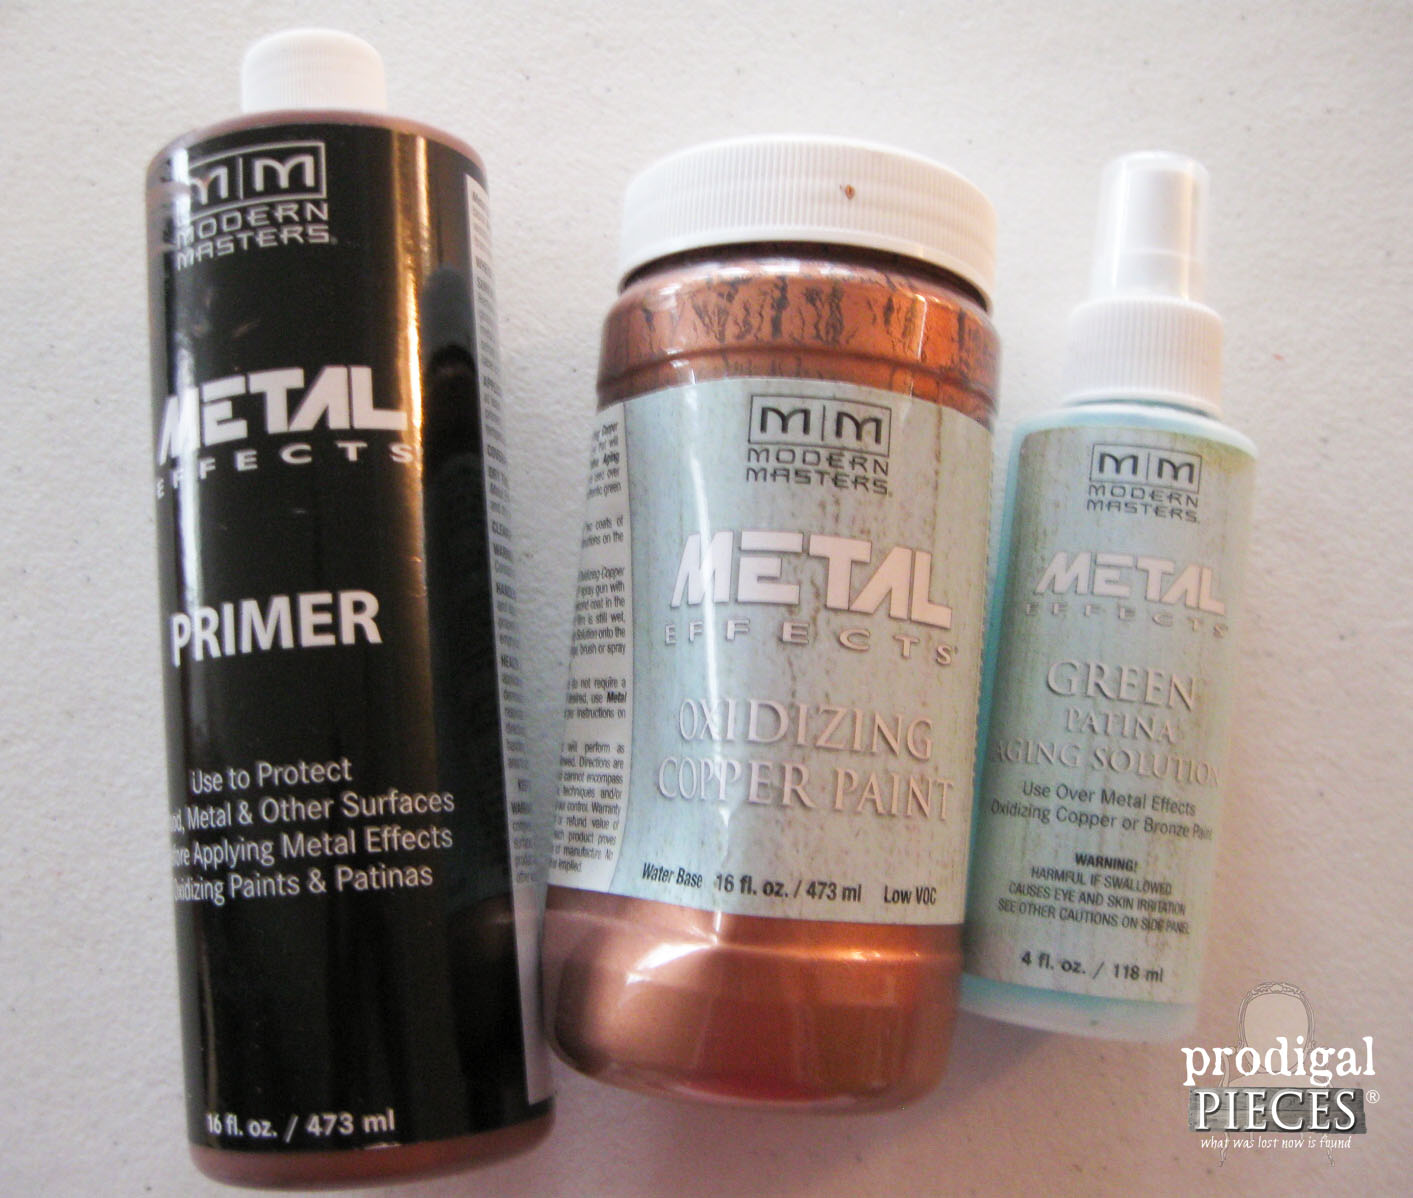 Modern Masters Metal Effects Copper Paint | Prodigal Pieces | www.prodigalpieces.com